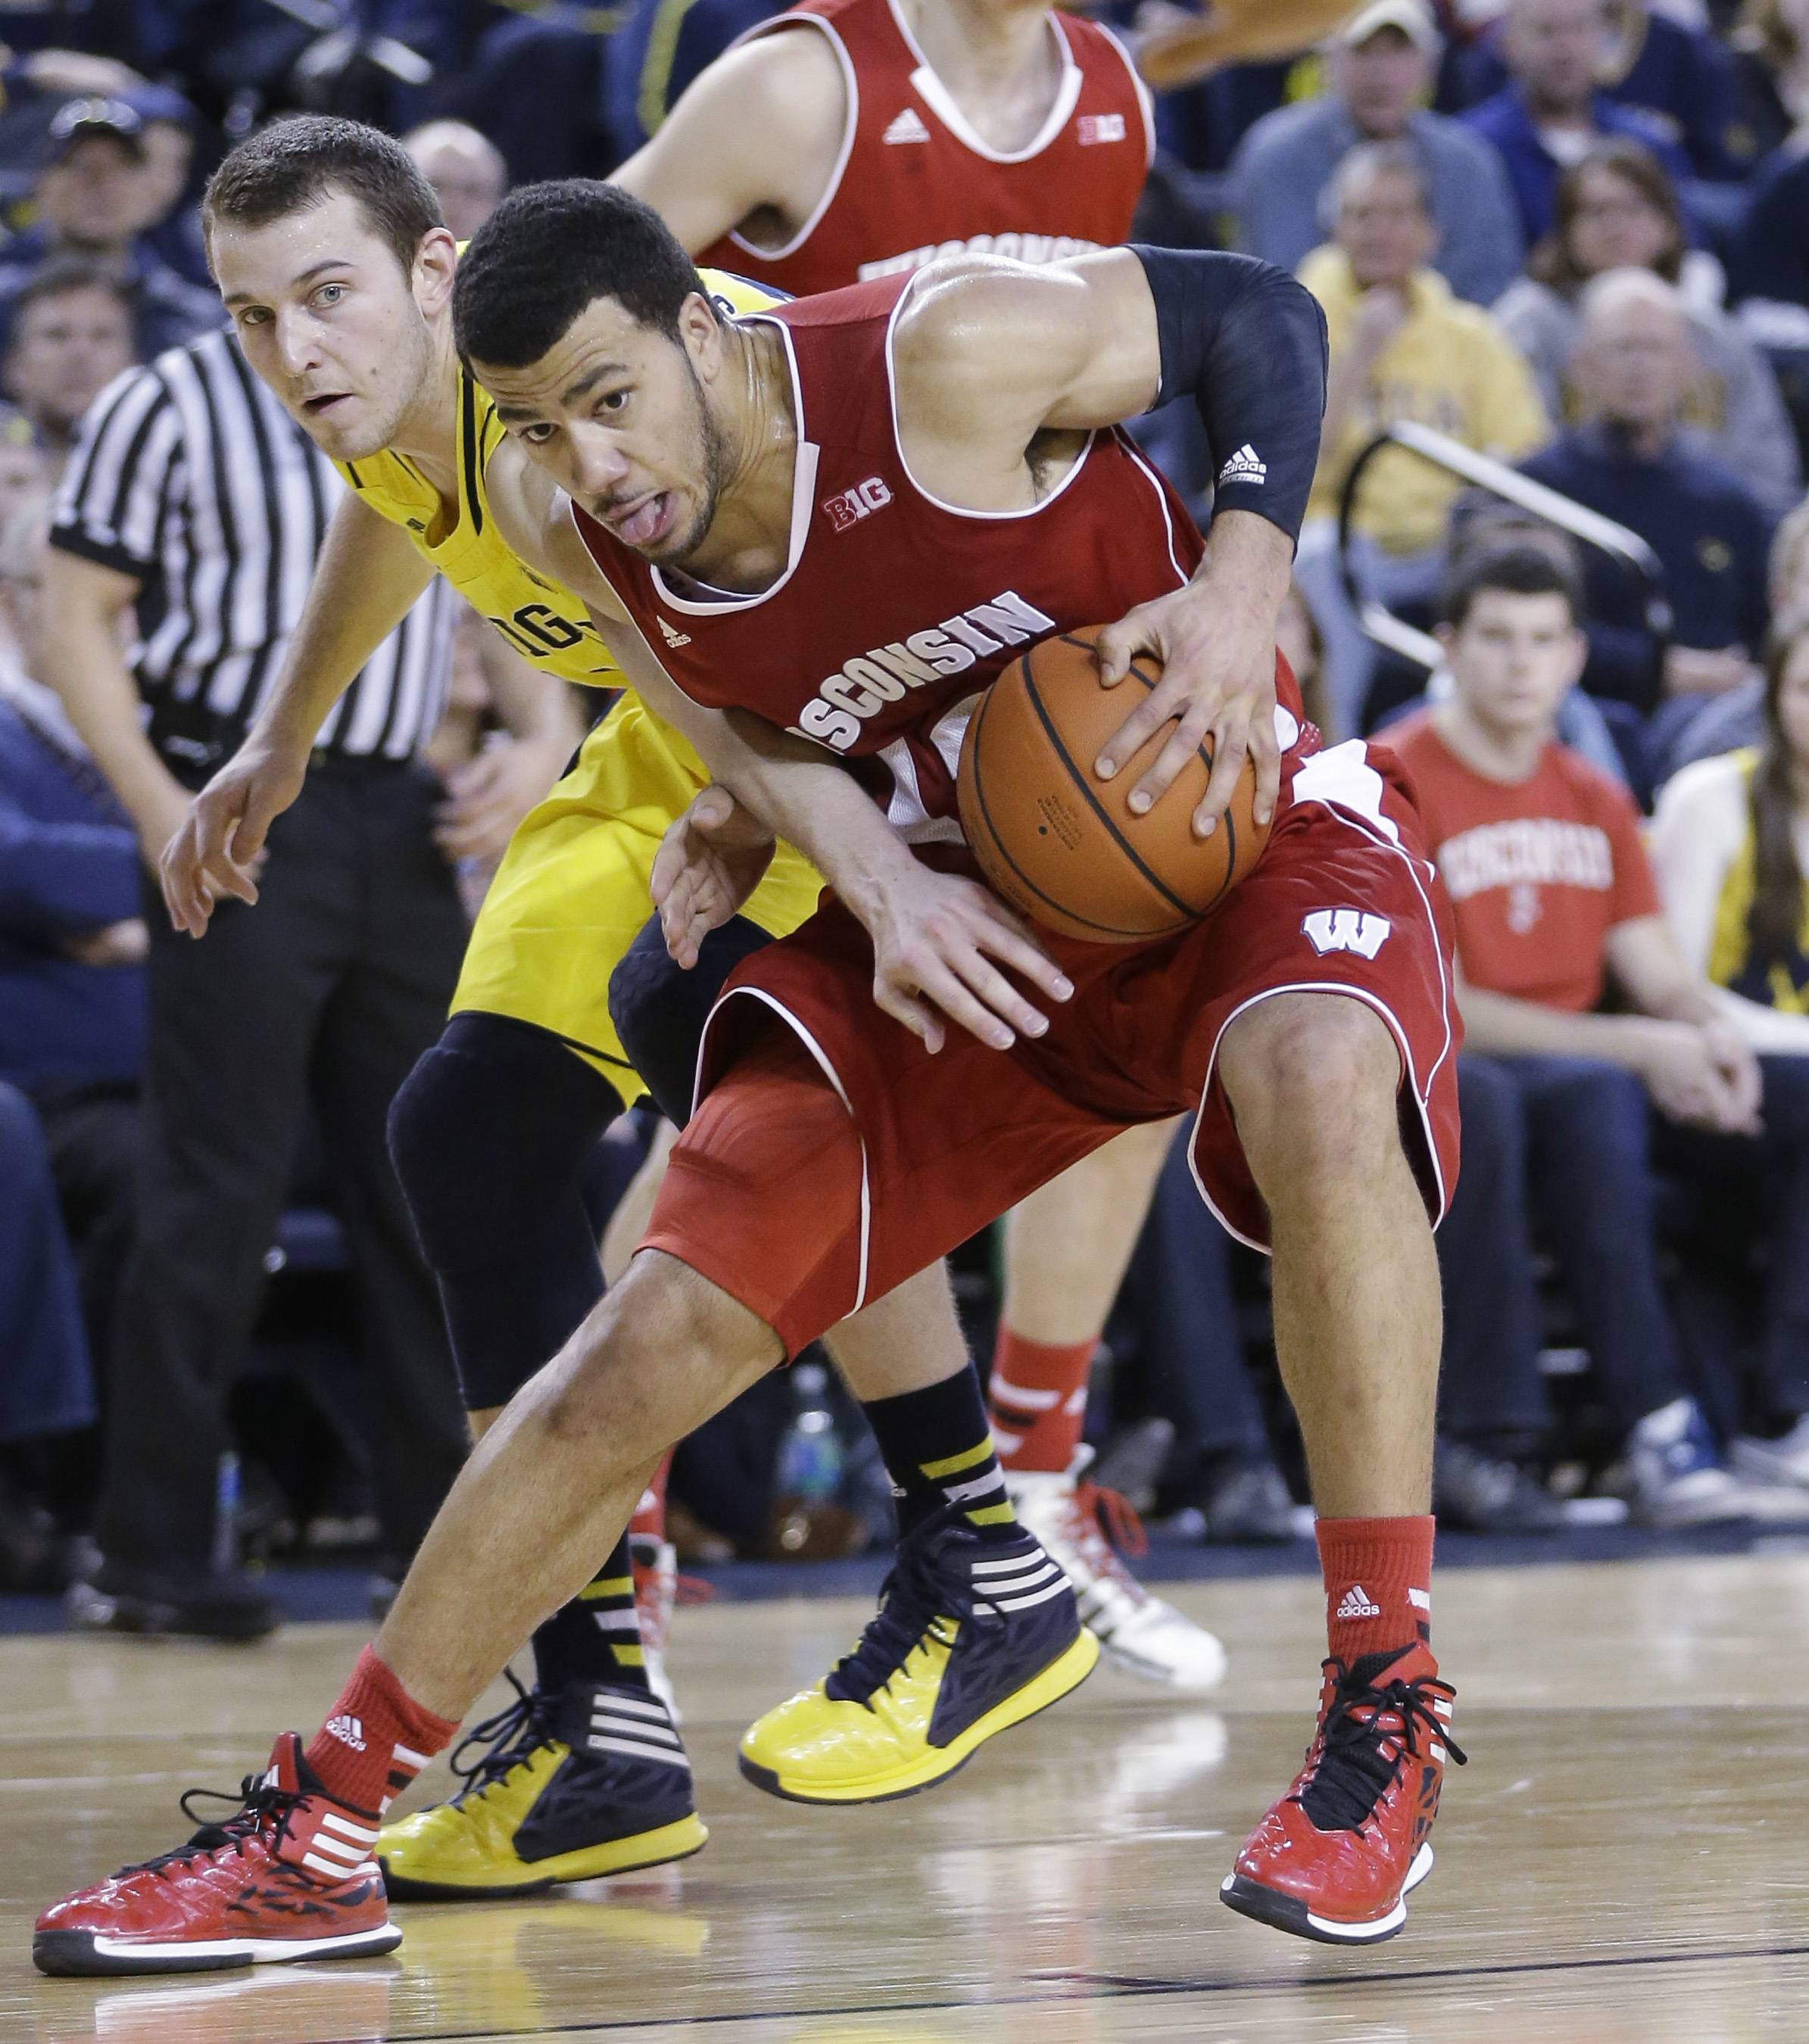 Michigan guard Nik Stauskas, left, reaches in on Wisconsin guard Traevon Jackson (12) during the second half of an NCAA college basketball game in Ann Arbor, Mich., Sunday, Feb. 16, 2014. Wisconsin defeated Michigan 75-62.